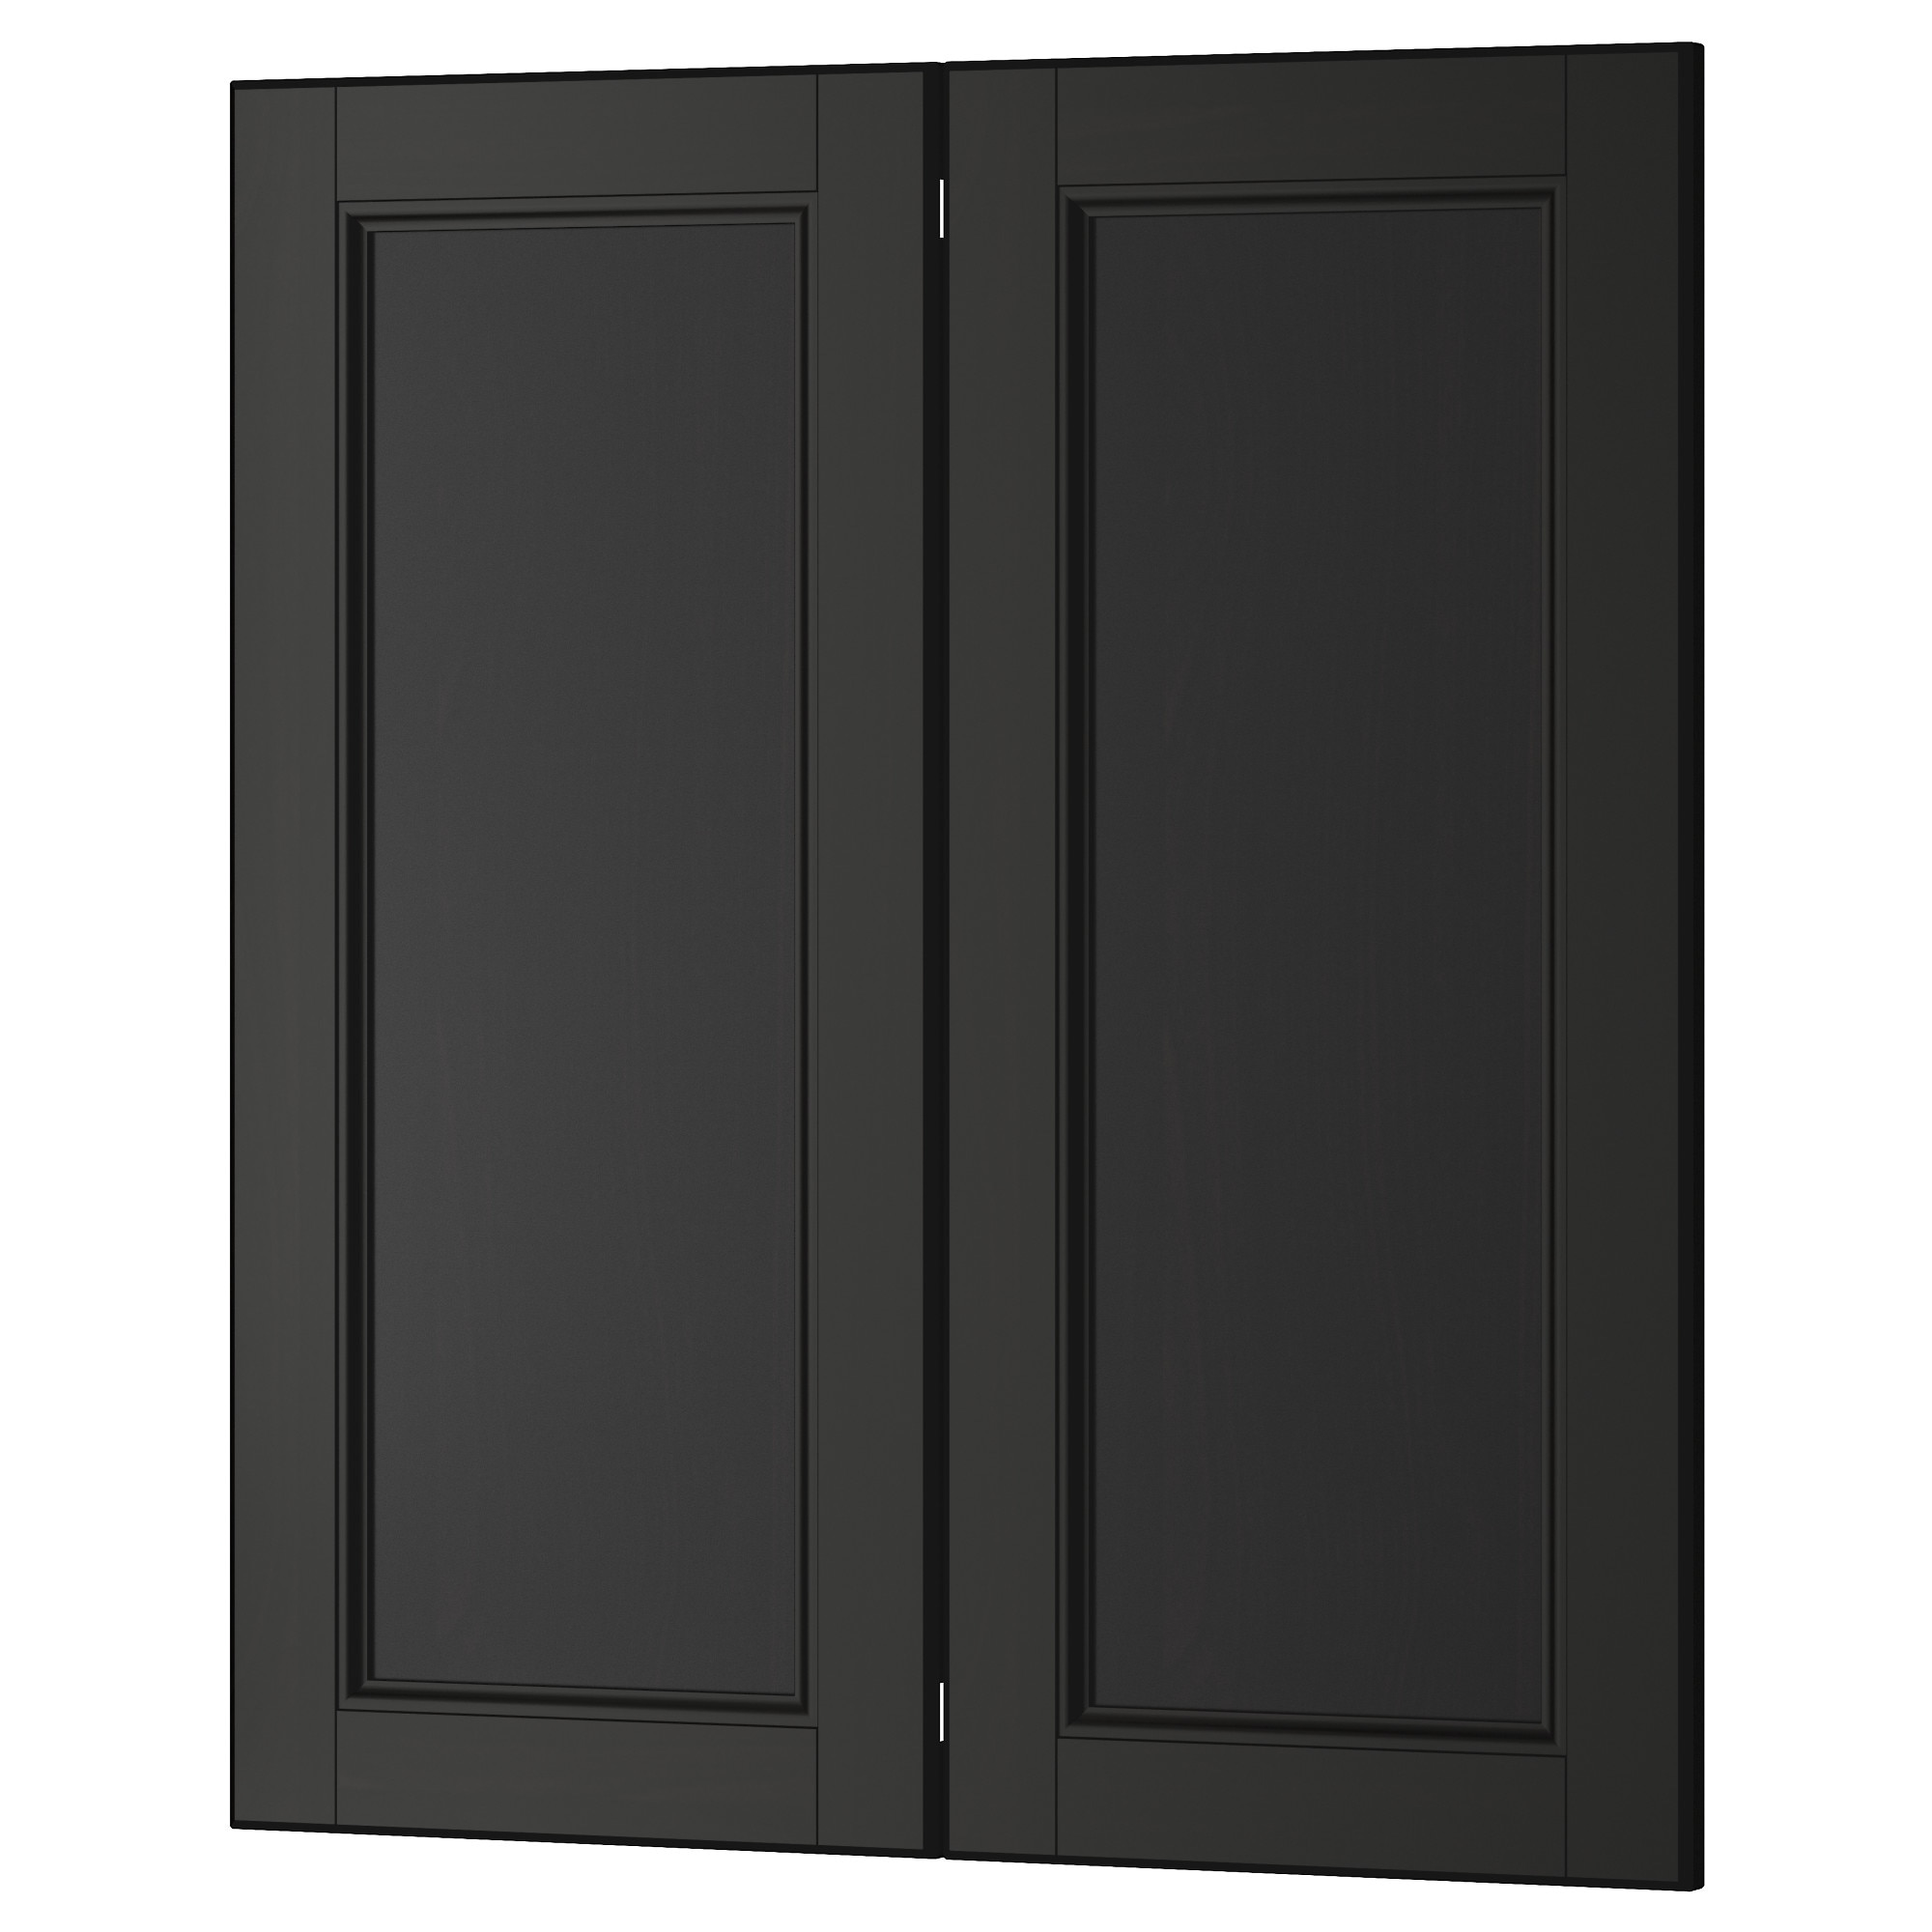 Ikea Kitchen Cabinets Black laxarby 2-p door/corner base cabinet set - ikea